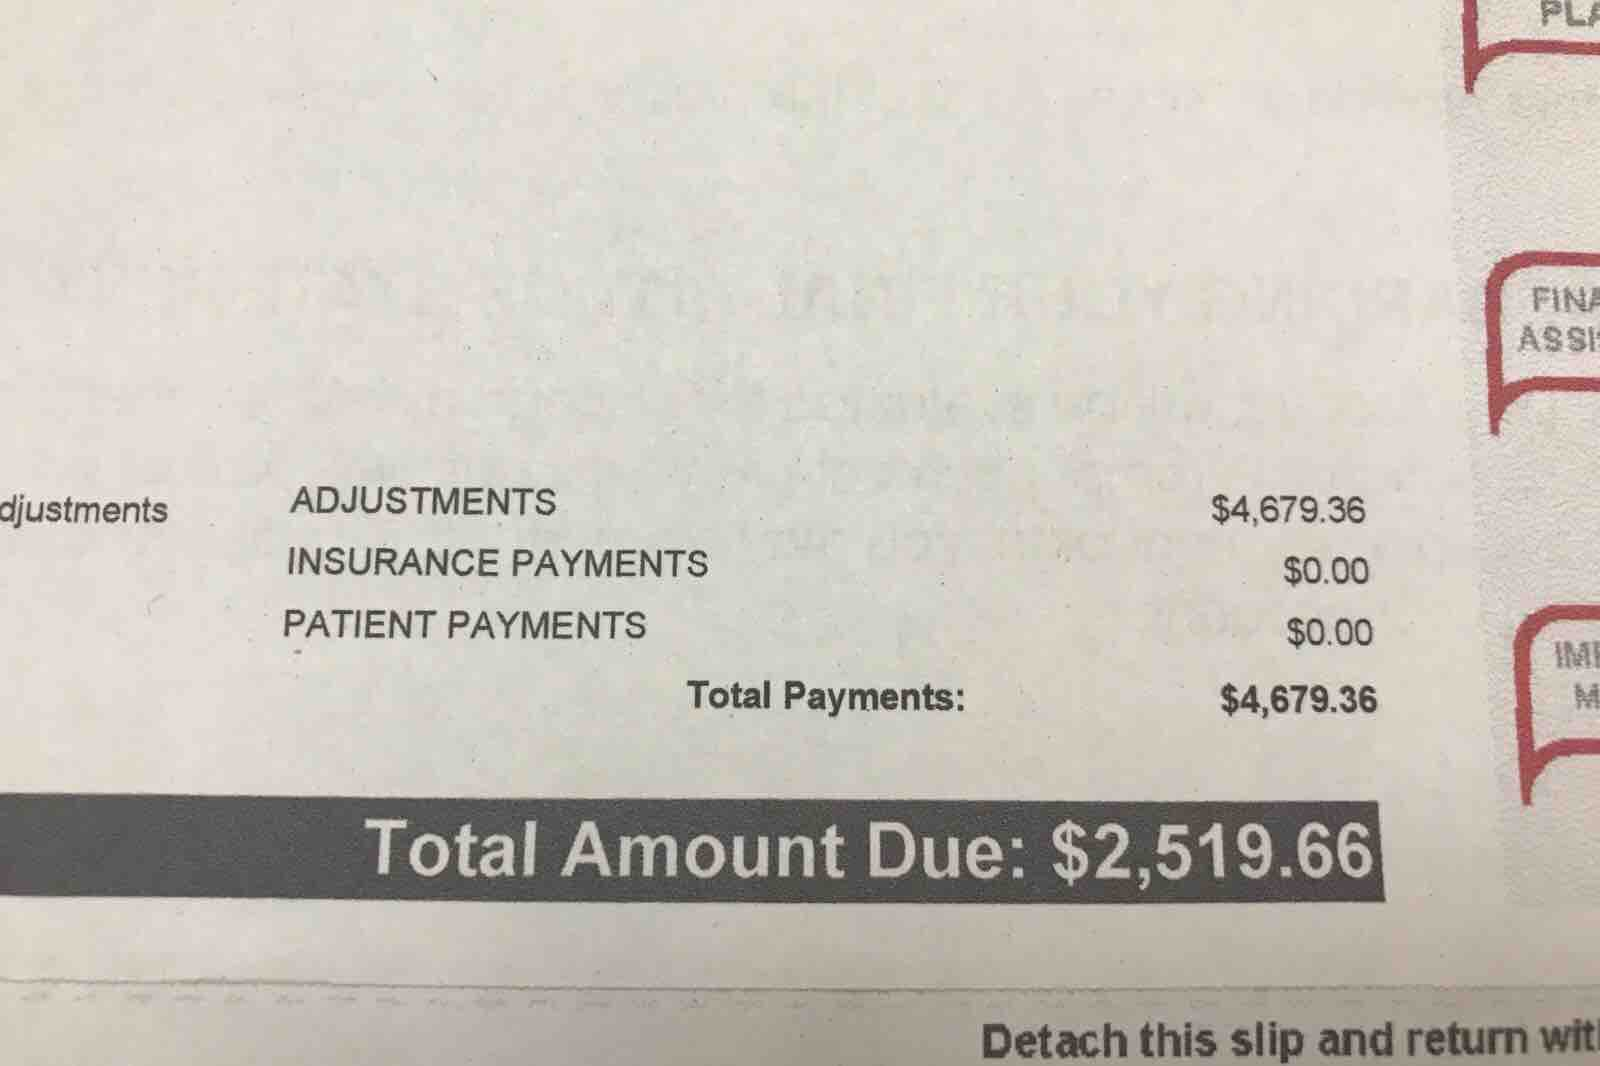 fundraiser by jess levernway : need help paying medical bills